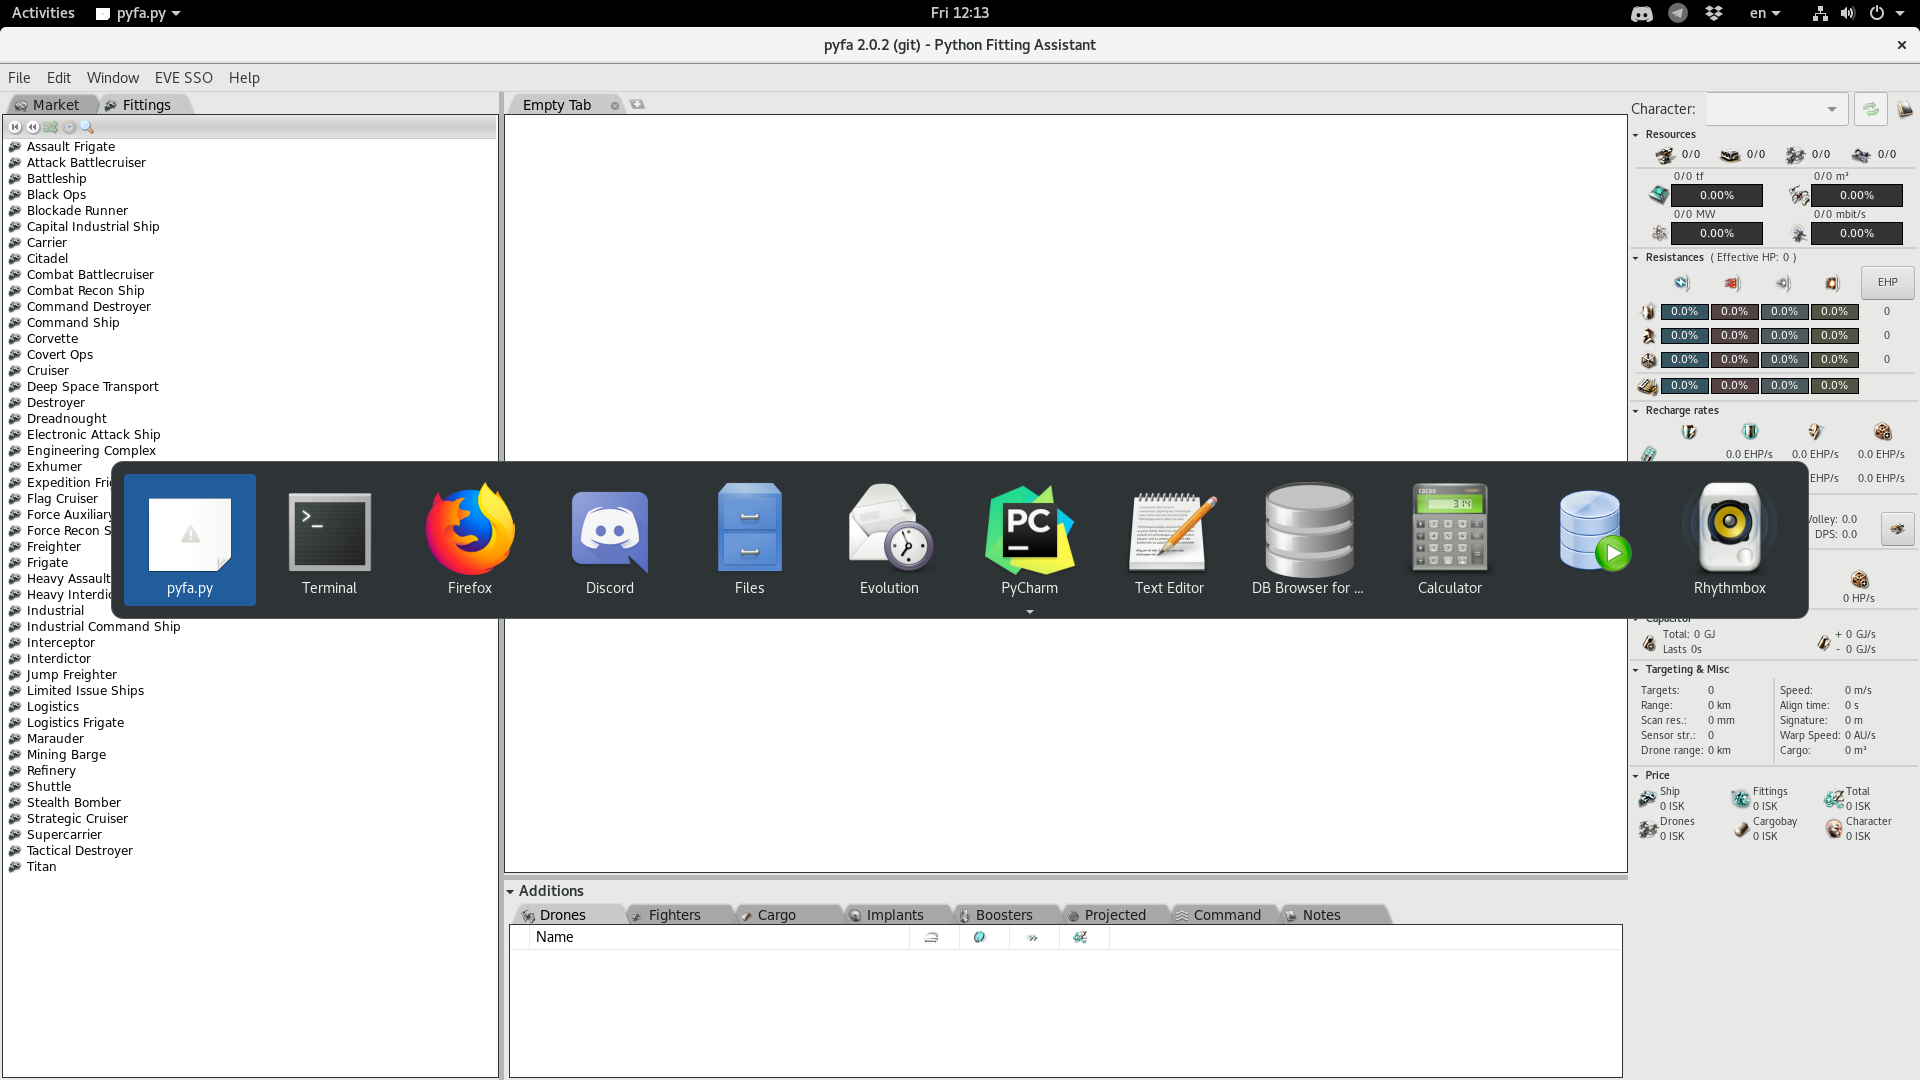 Pyfa icon is not shown in linux/wayland session · Issue #1607 · pyfa